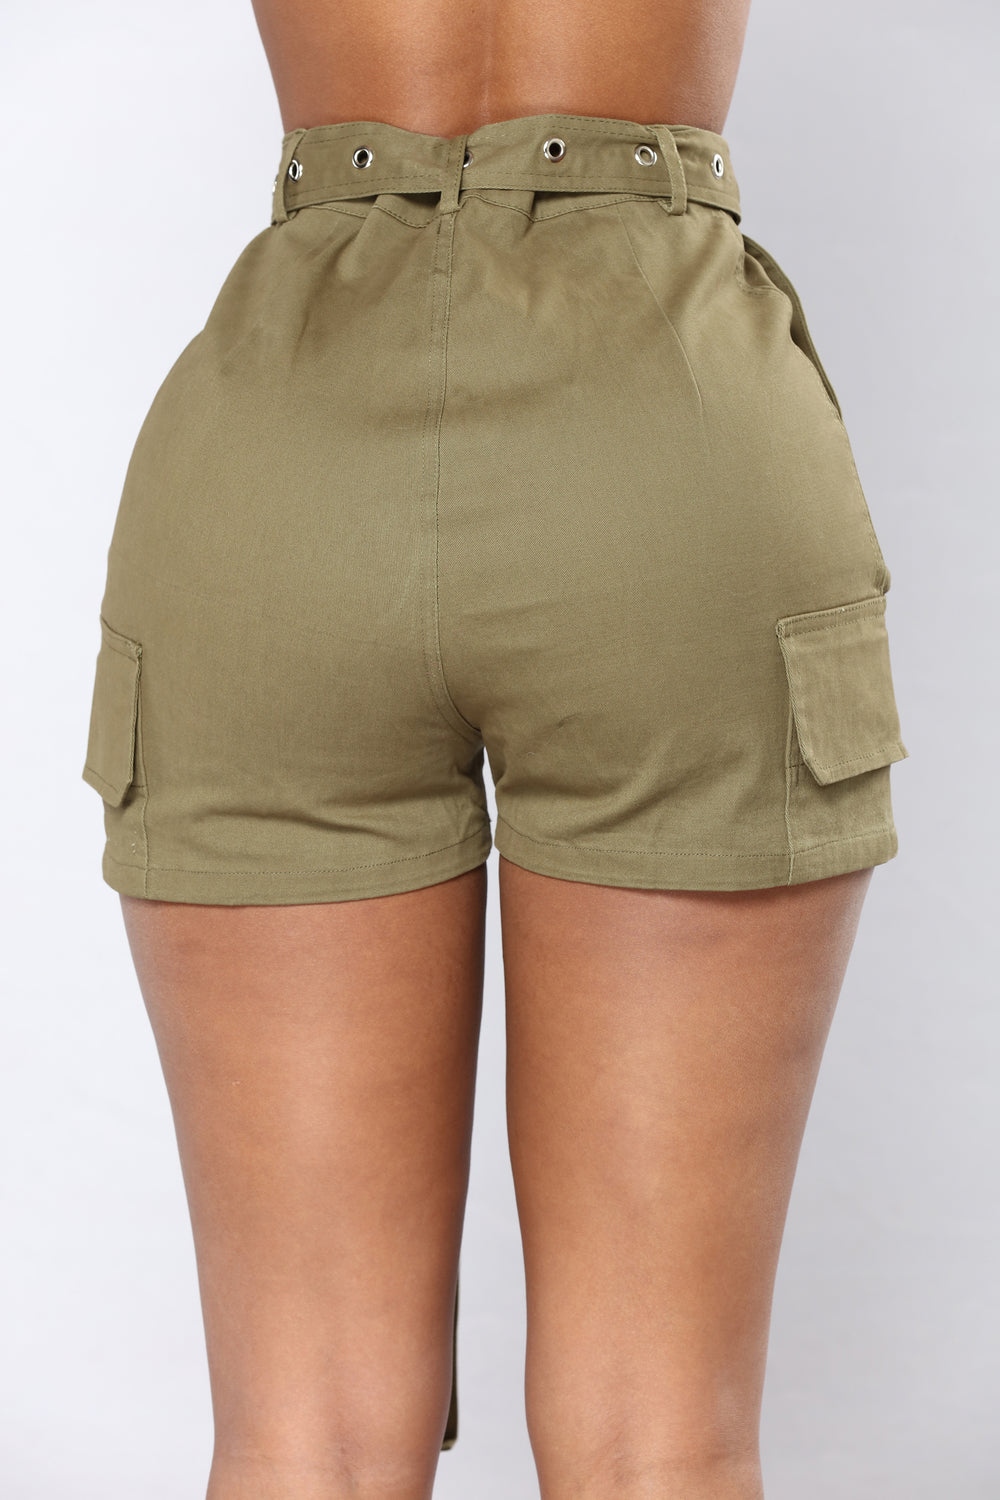 Going Rogue Cargo Shorts - Olive